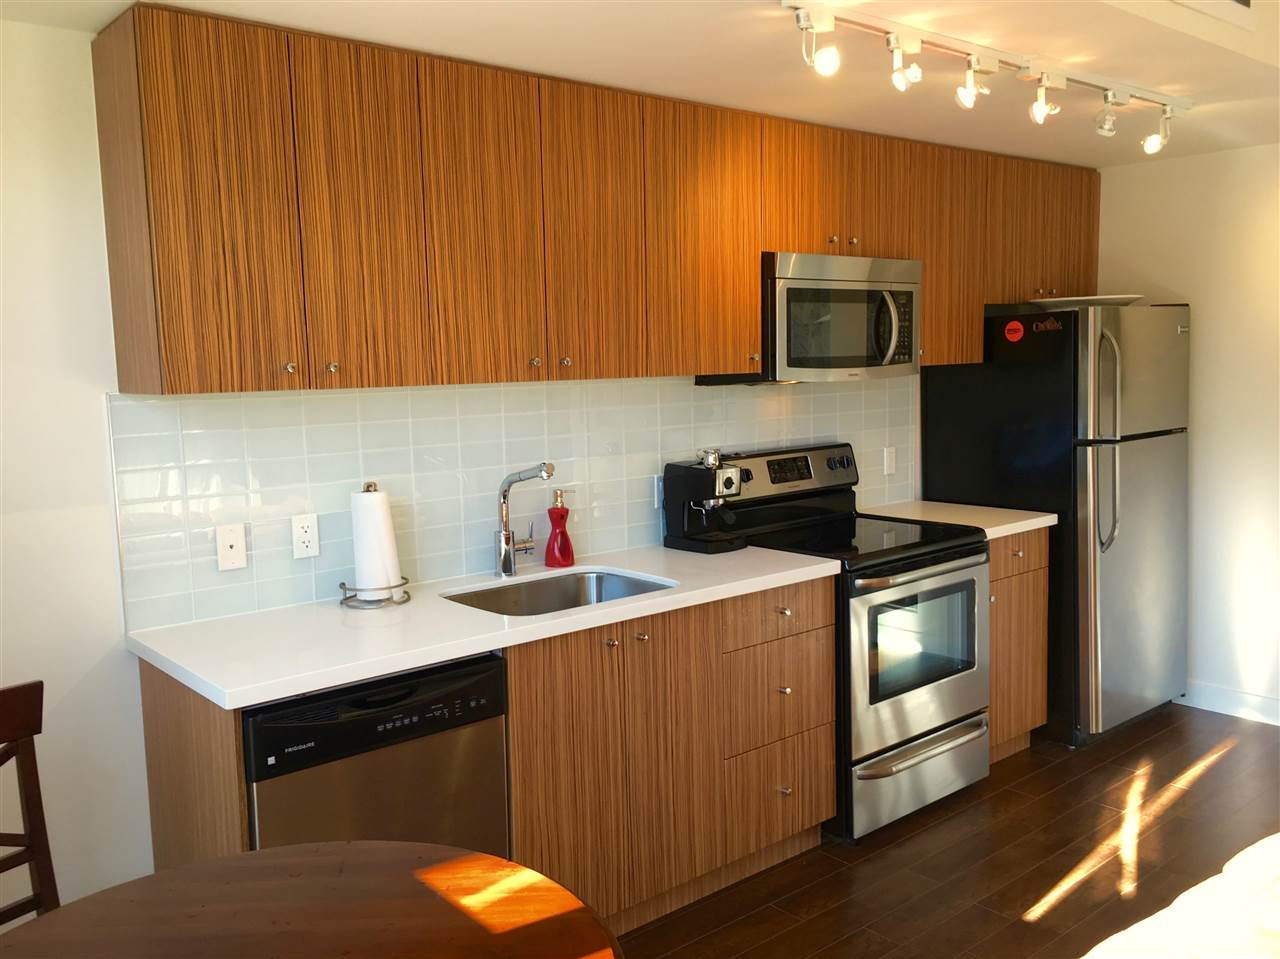 "Photo 7: 308 37841 CLEVELAND Avenue in Squamish: Downtown SQ Condo for sale in ""STUDIO SQ"" : MLS(r) # R2112293"